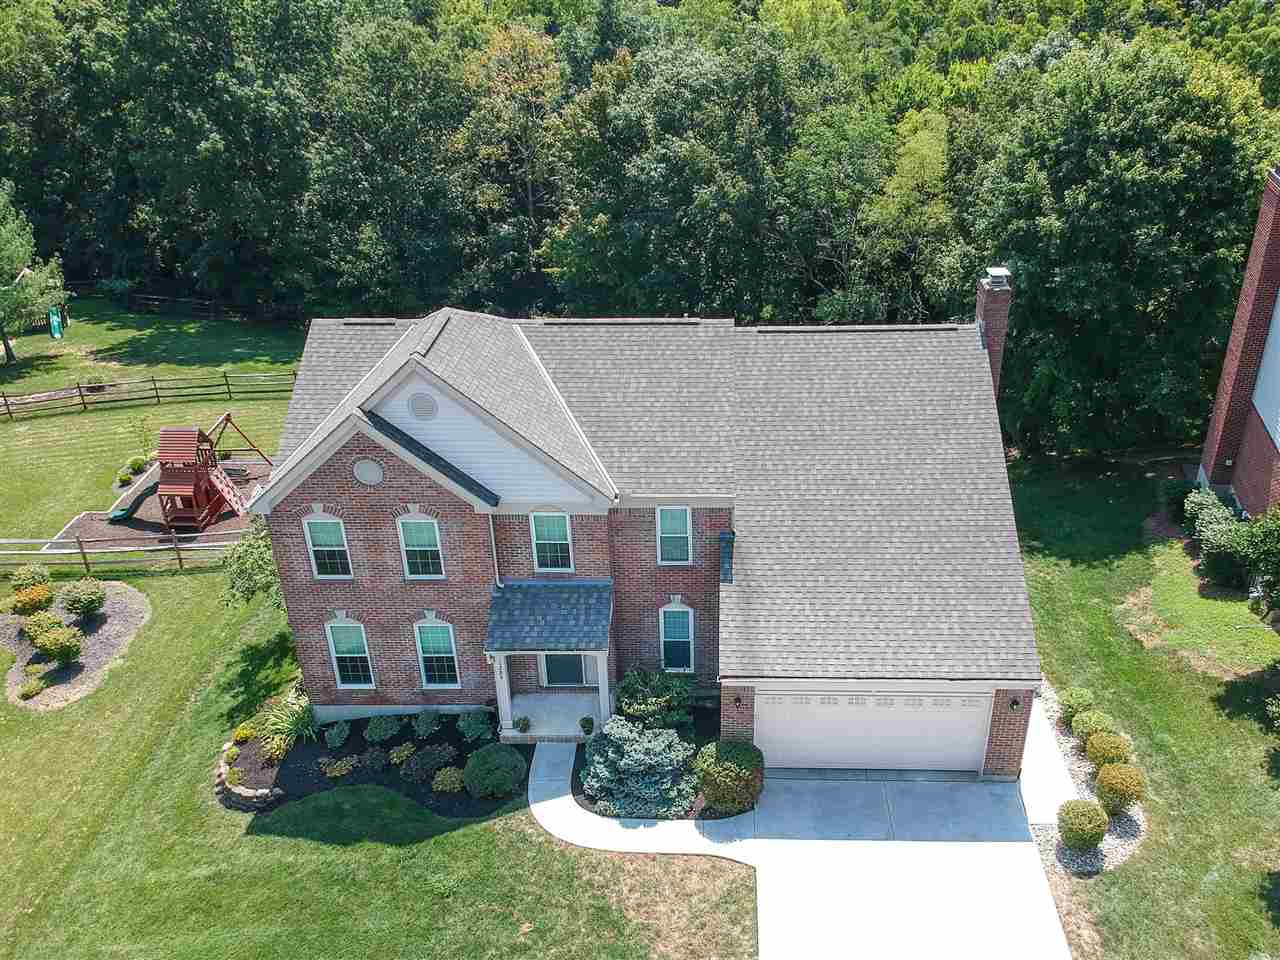 Photo 2 for 1289 Aaron Ln Erlanger, KY 41018